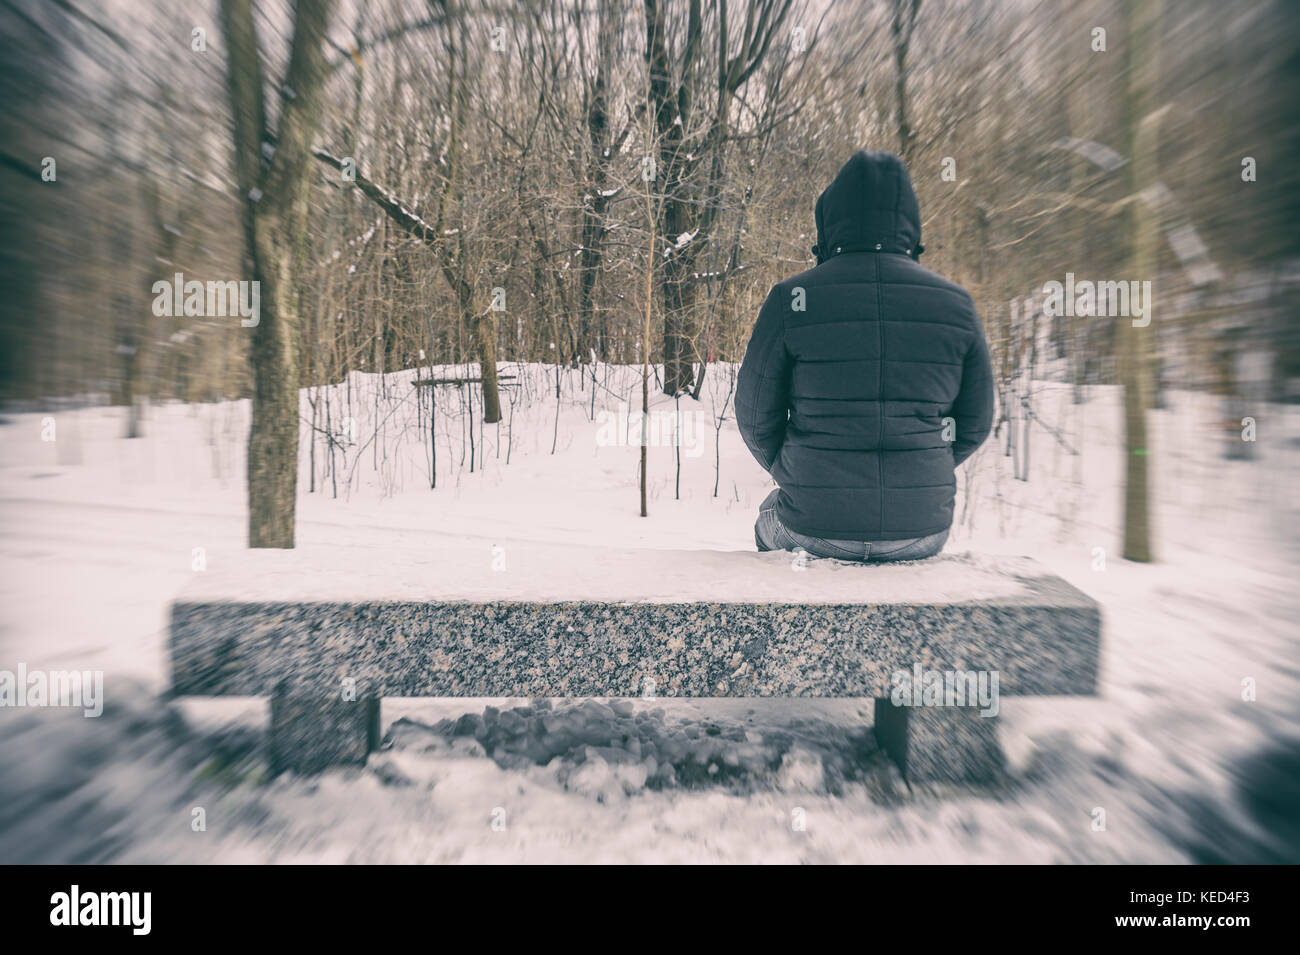 Man sitting on bench in a forest in winter with snow on the ground - Stock Image